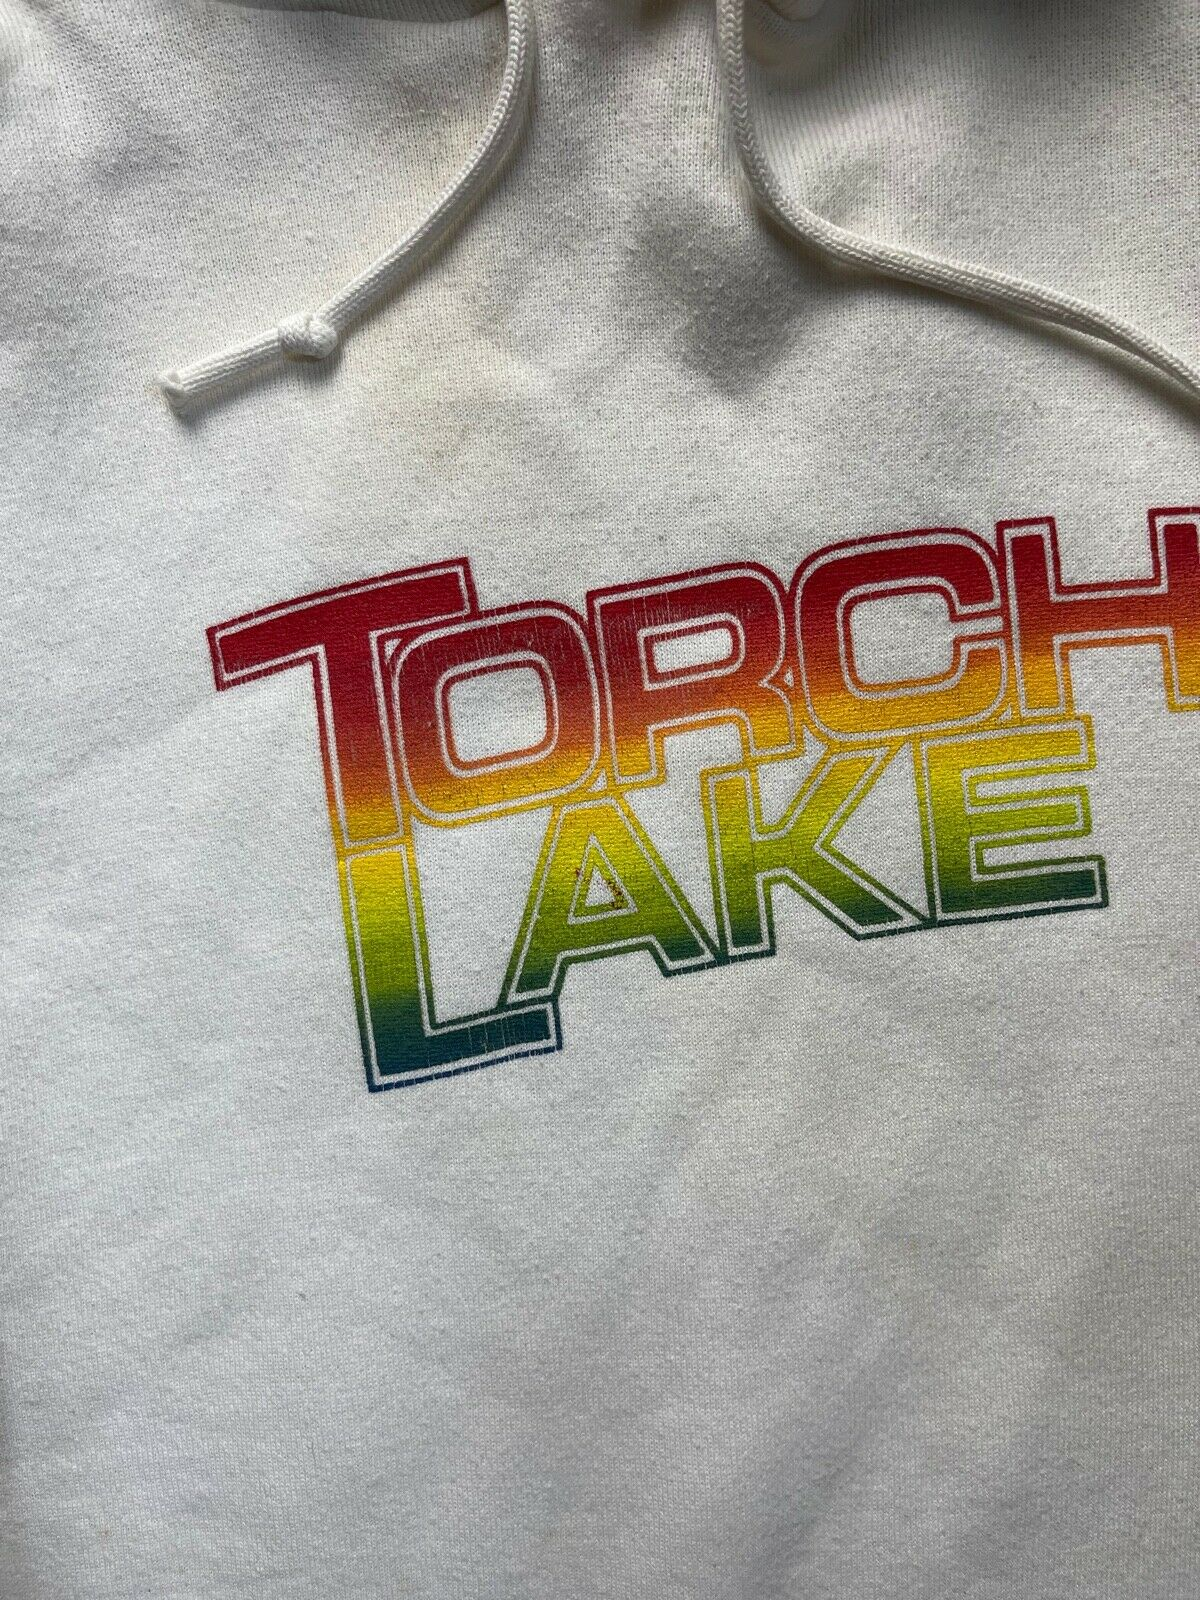 Vtg 70s 80s Torch Lake Hoodie Jerseys By Russell … - image 2